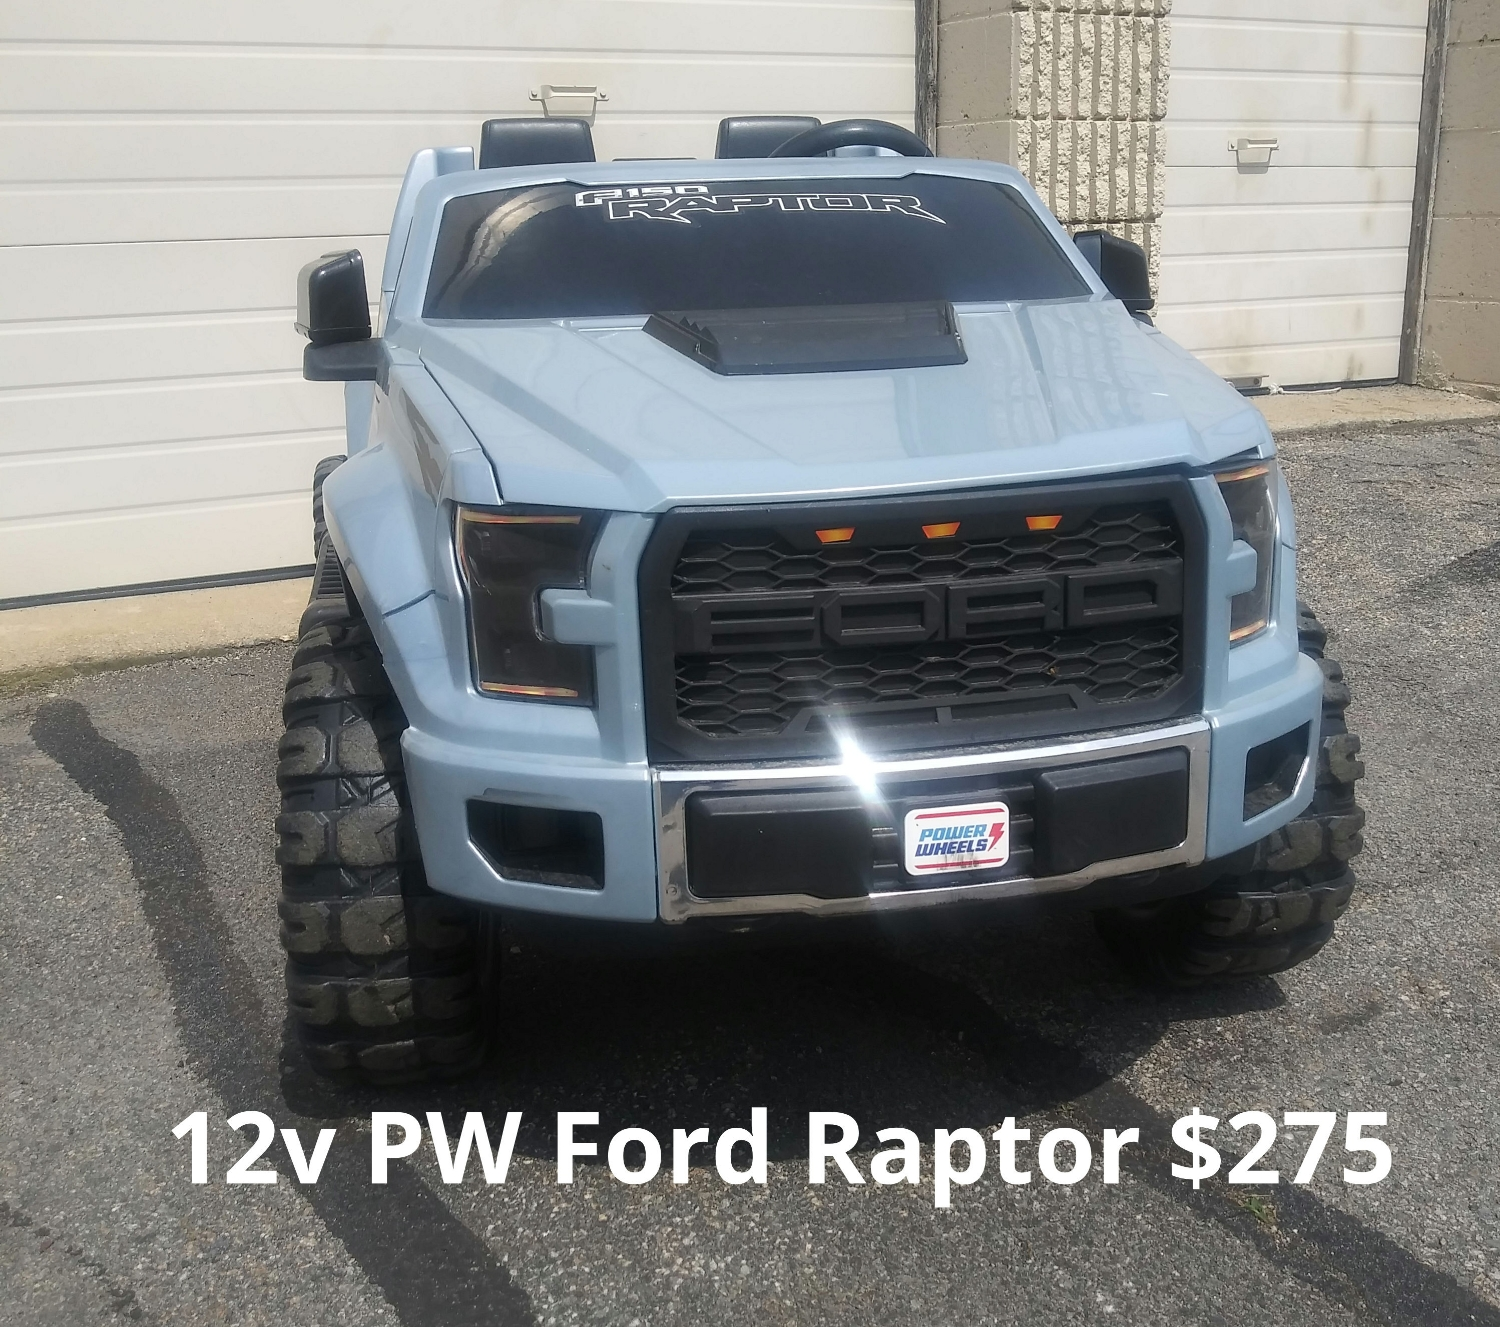 12v Power Wheels Ford Raptor